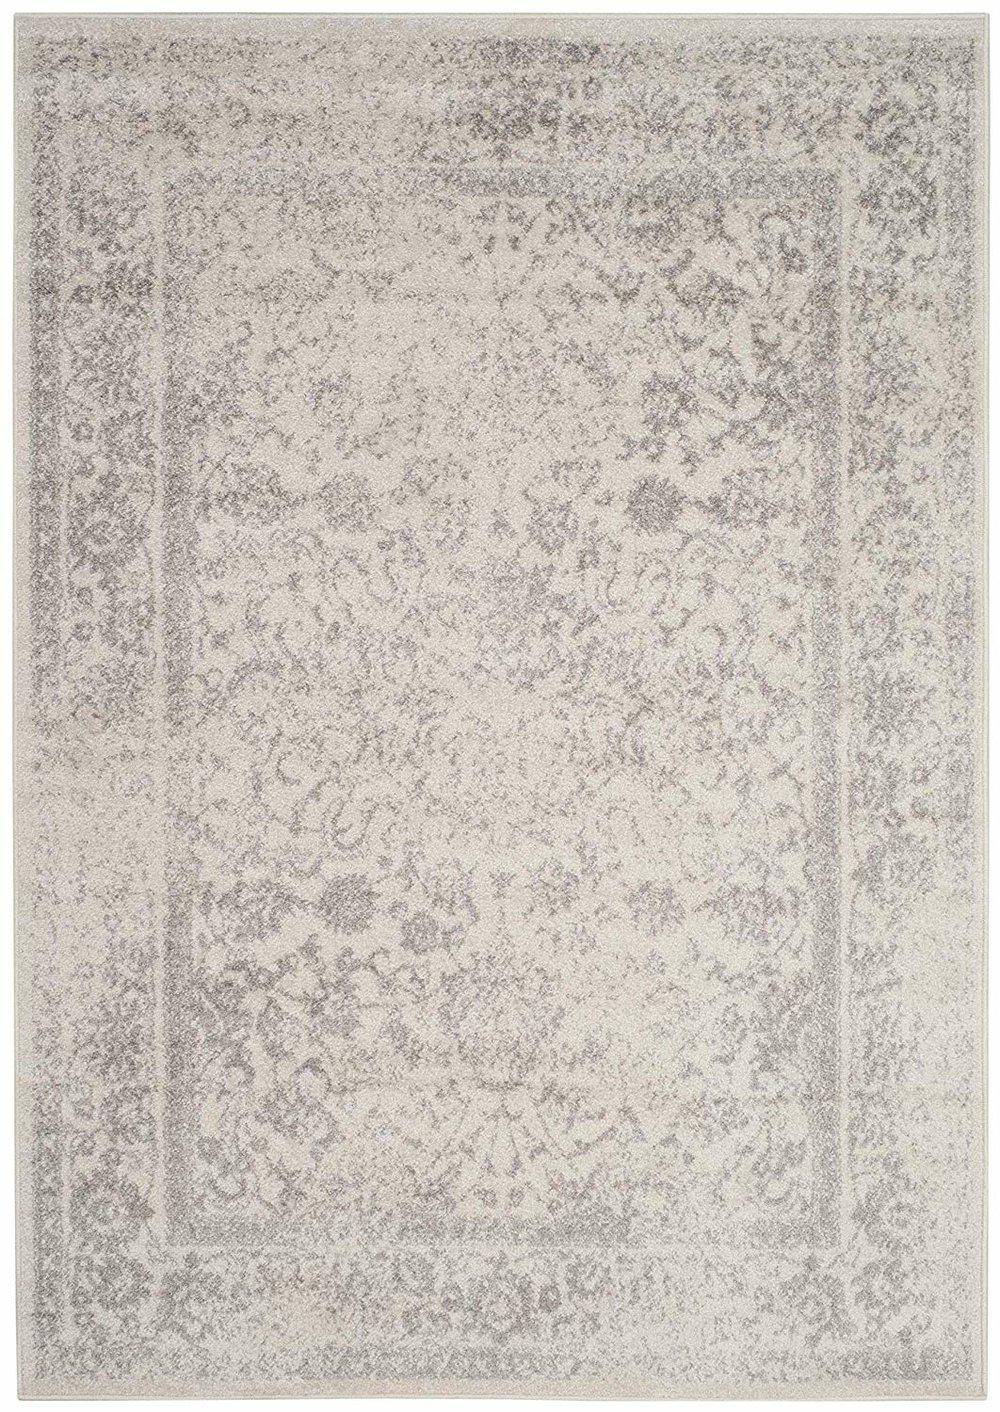 Distressed Silver Rug  4x6